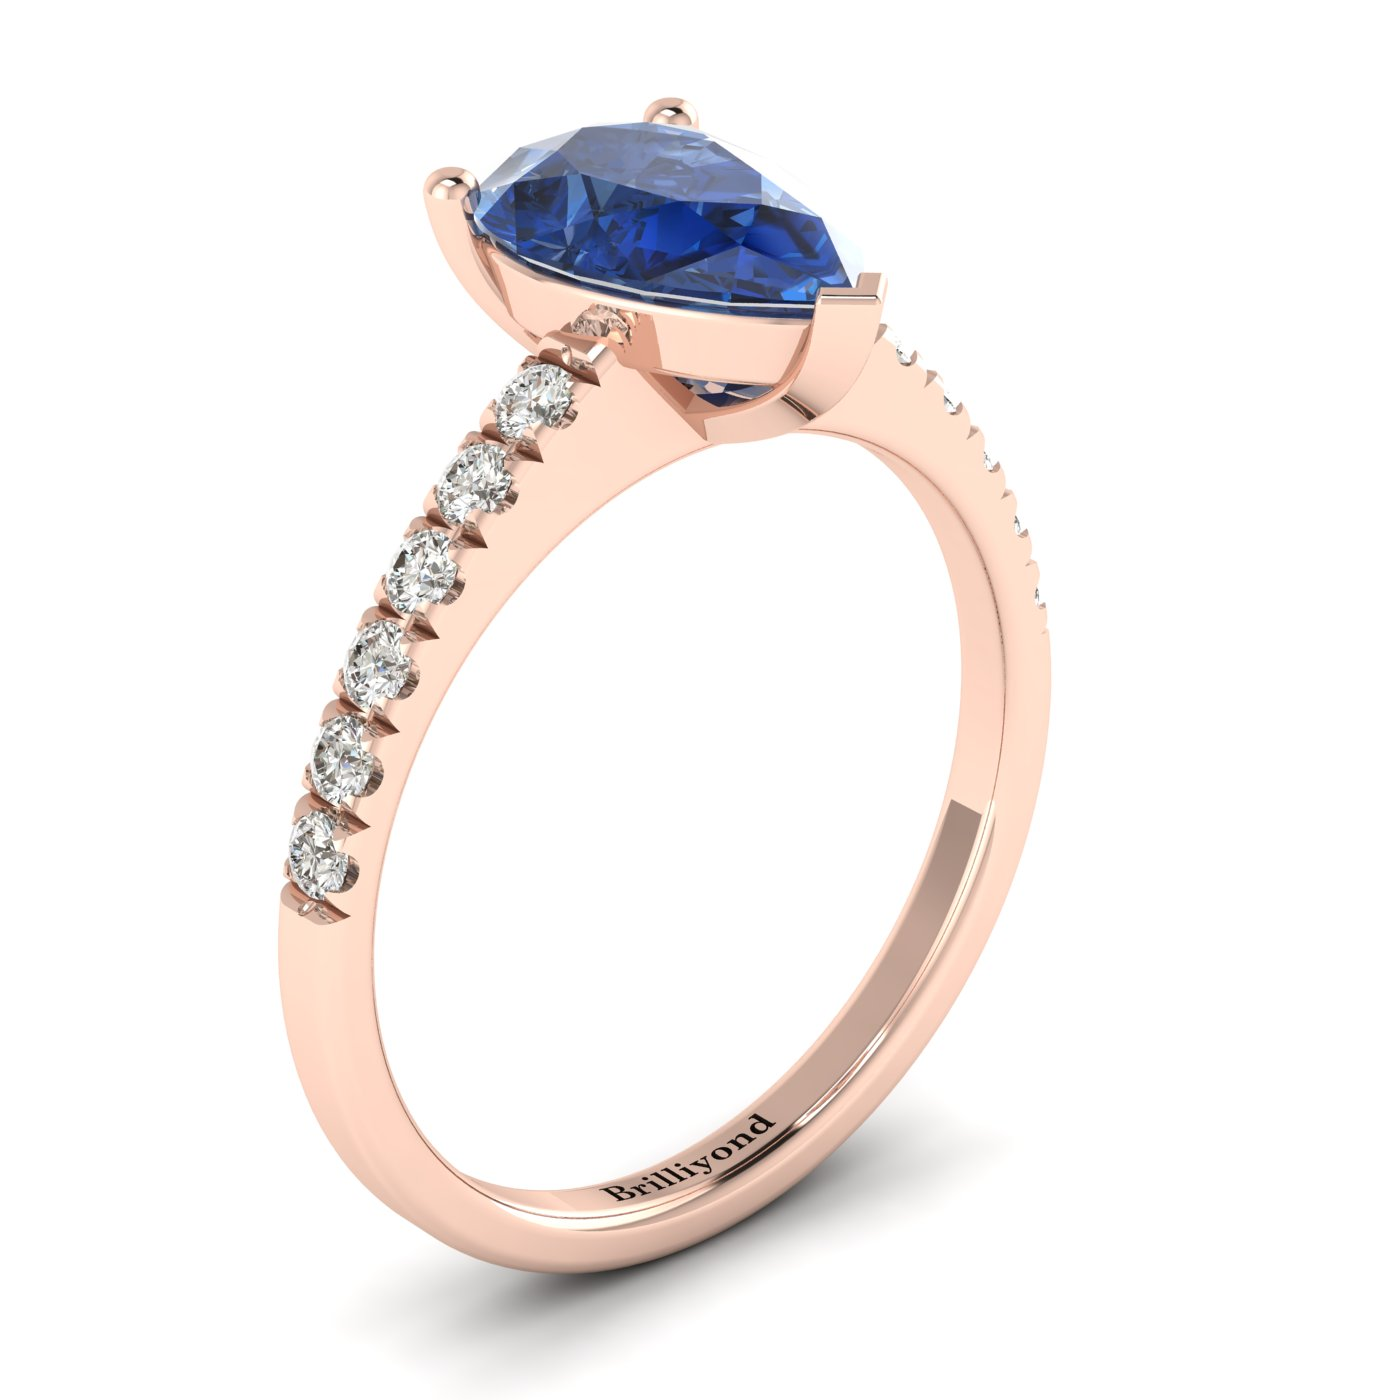 Solid 18k Rose Gold Engagement Ring with Blue Ceylon Sapphire and GIA Certified Diamond Accents